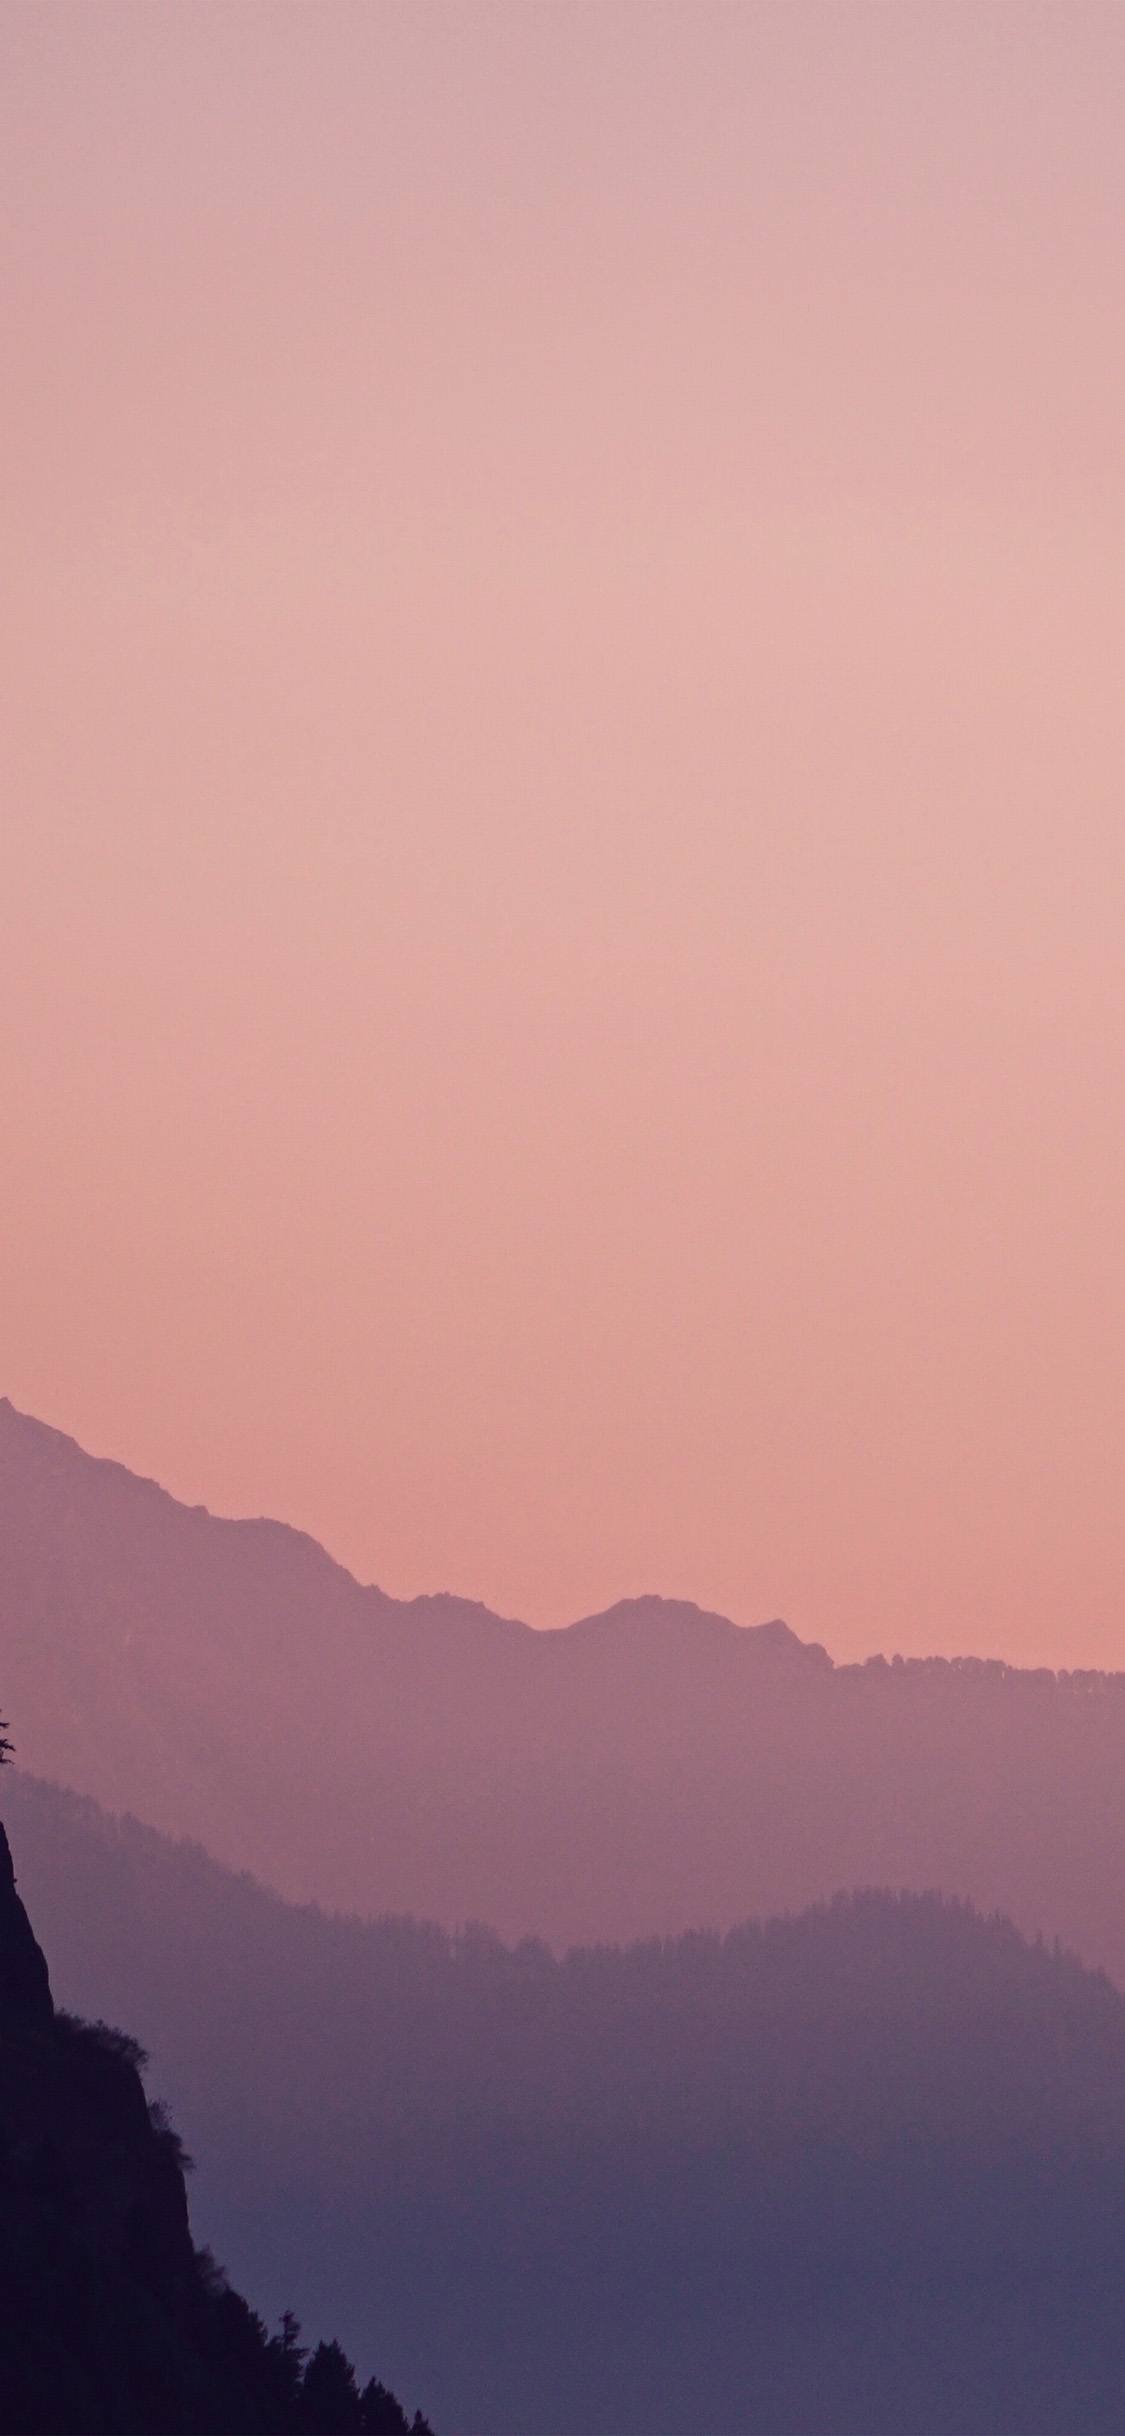 iPhonexpapers.com-Apple-iPhone-wallpaper-ny80-mountain-morning-pink-nature